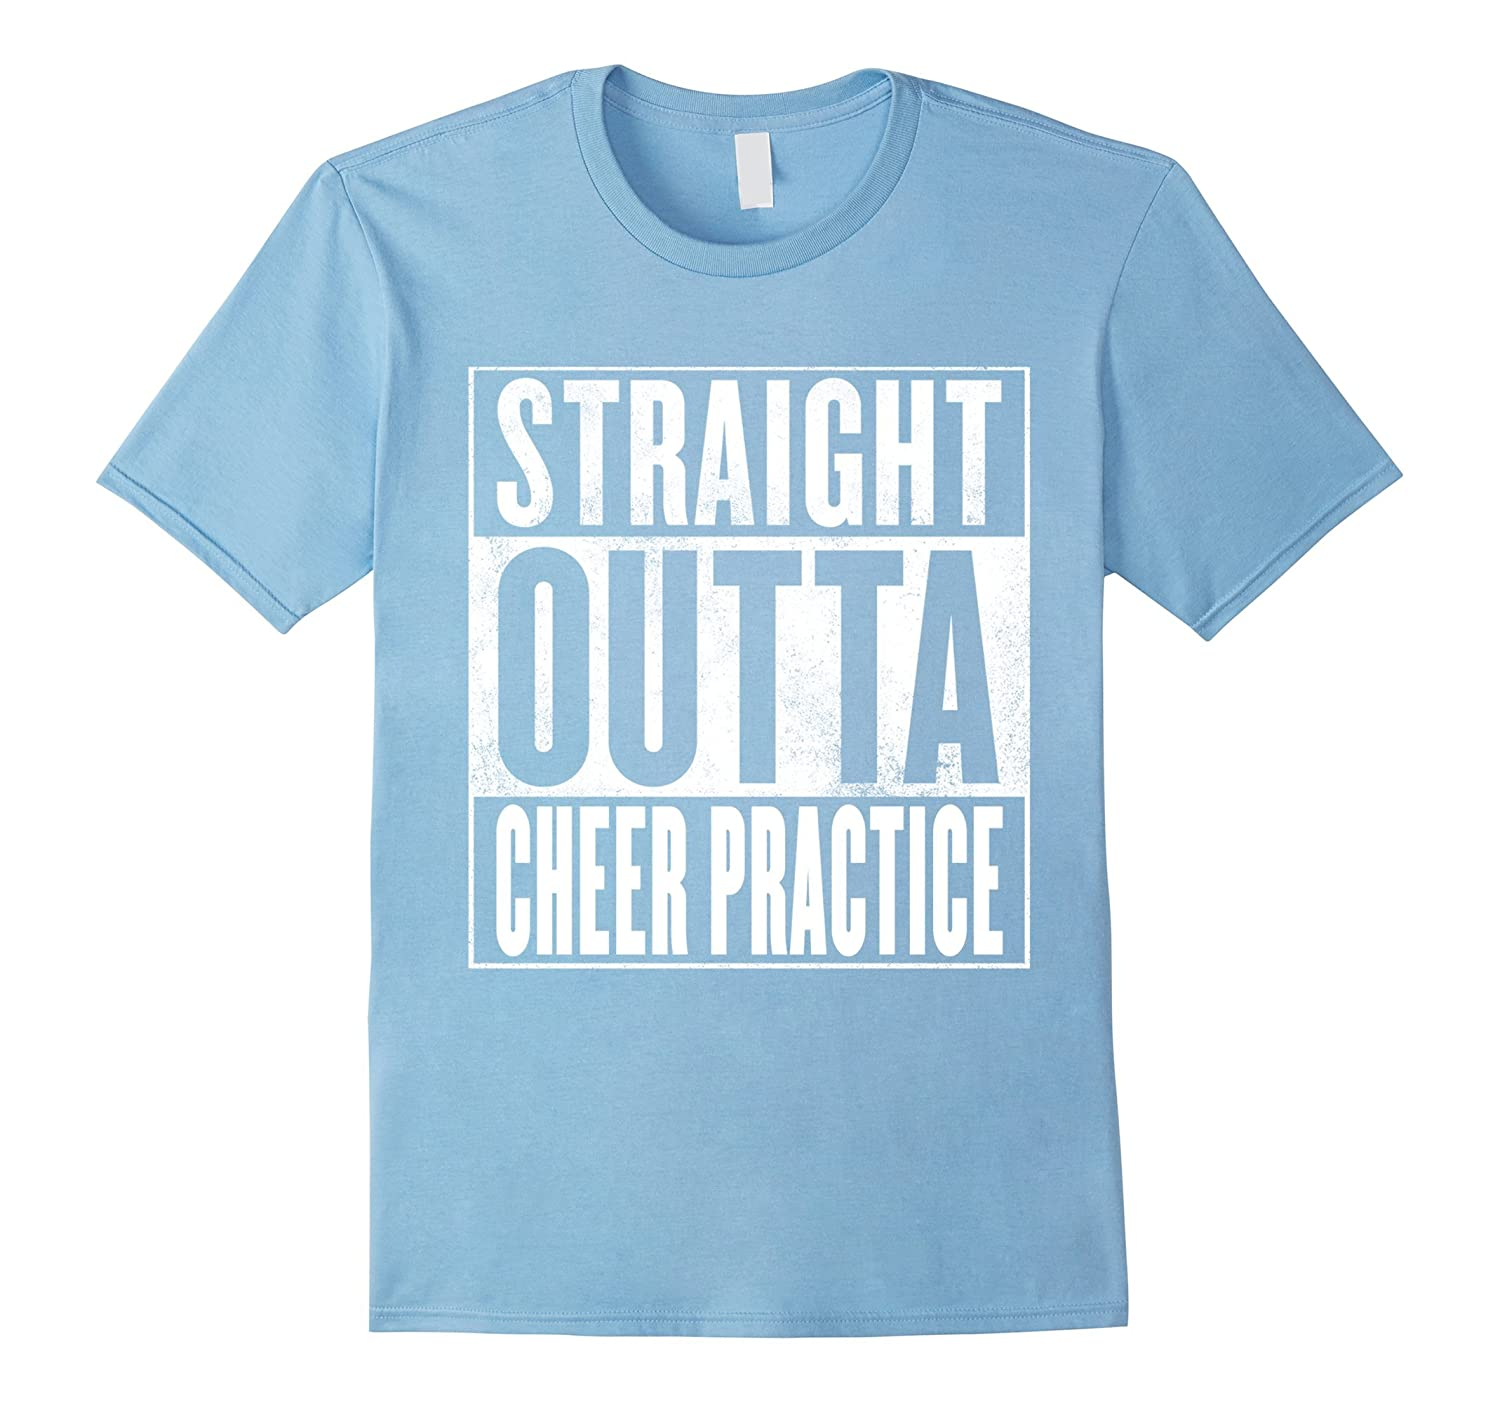 Cheer Practice T-Shirt - STRAIGHT OUTTA CHEER PRACTICE Shirt-FL